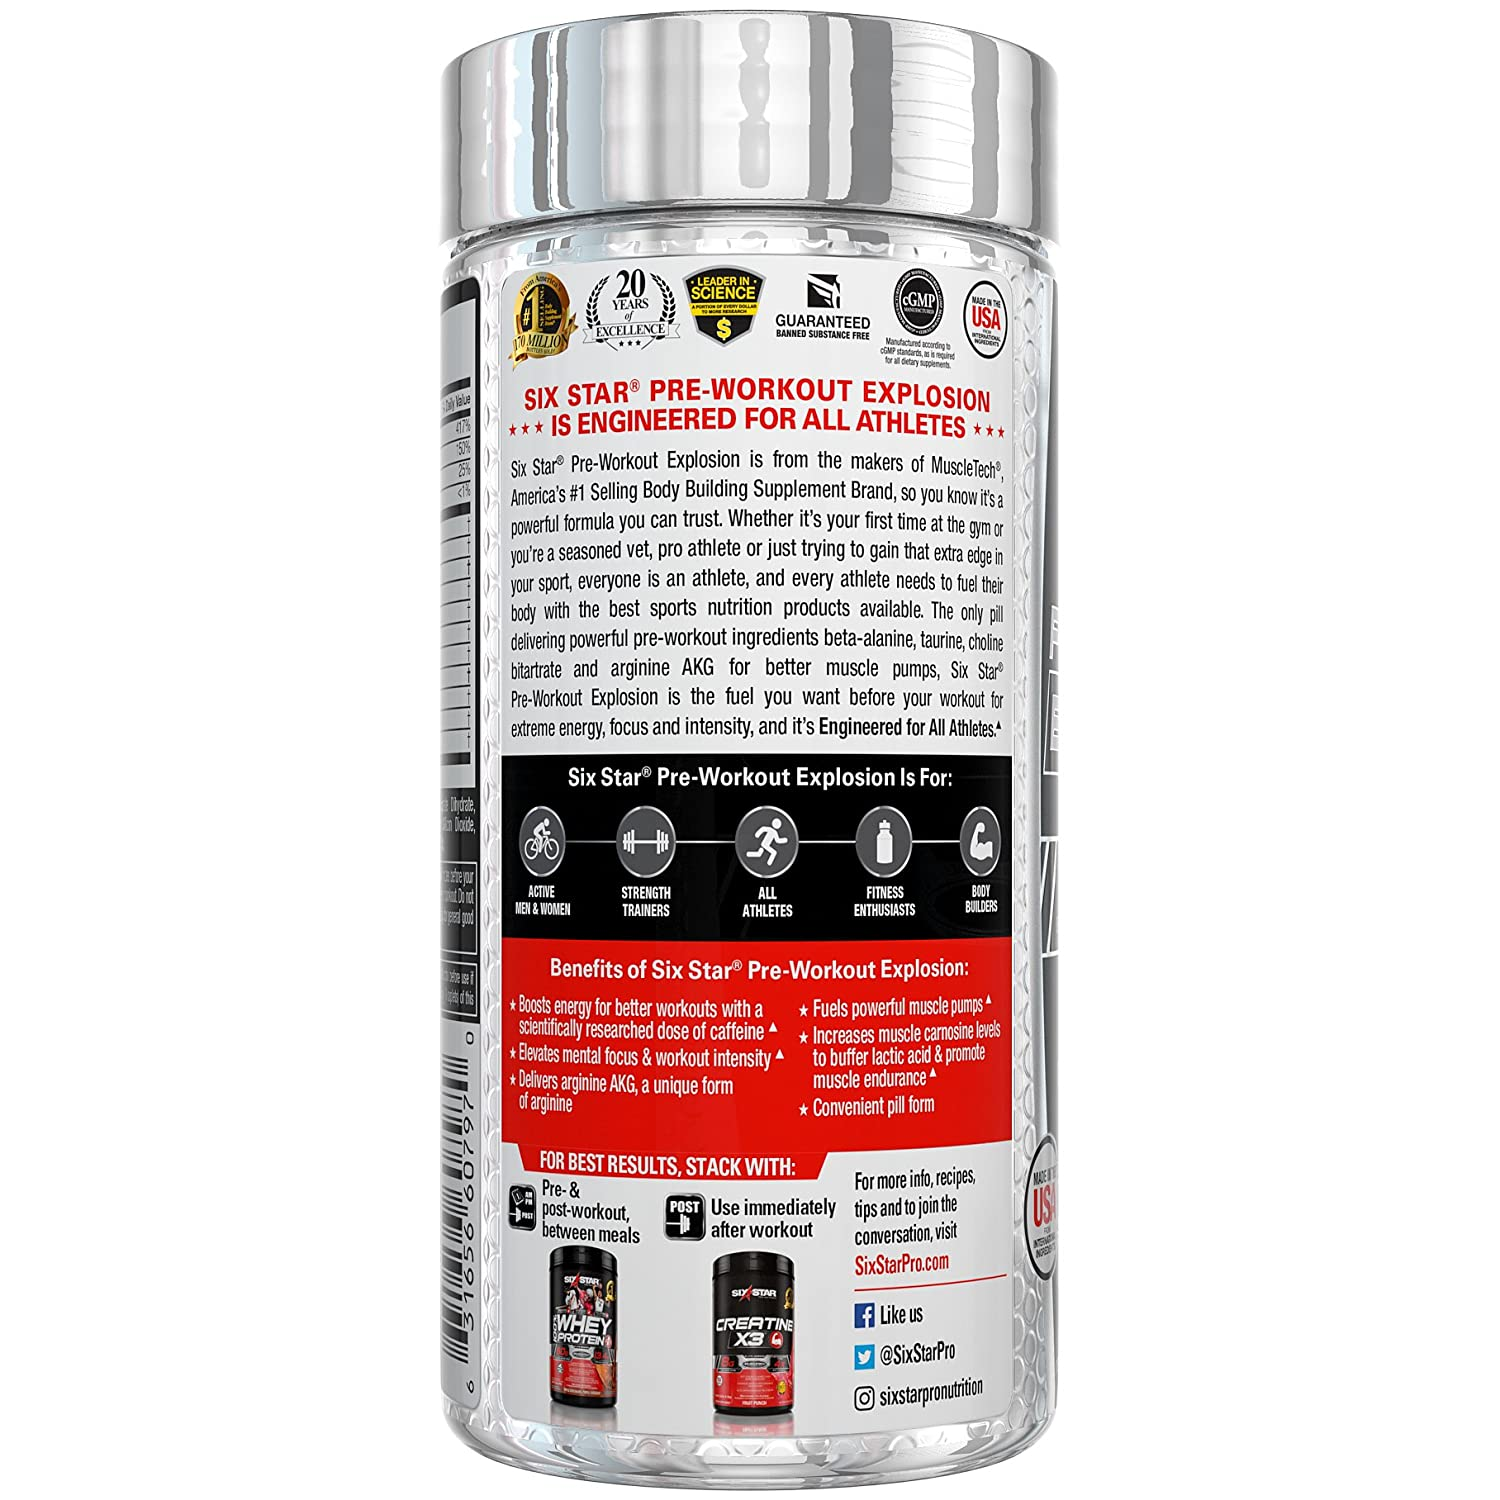 Amazon.com: Six Star Explosion Pre Workout Pills with L-Arginine, Nitric Oxide, Beta Alanine, and Energy, 120 Count: Health & Personal Care